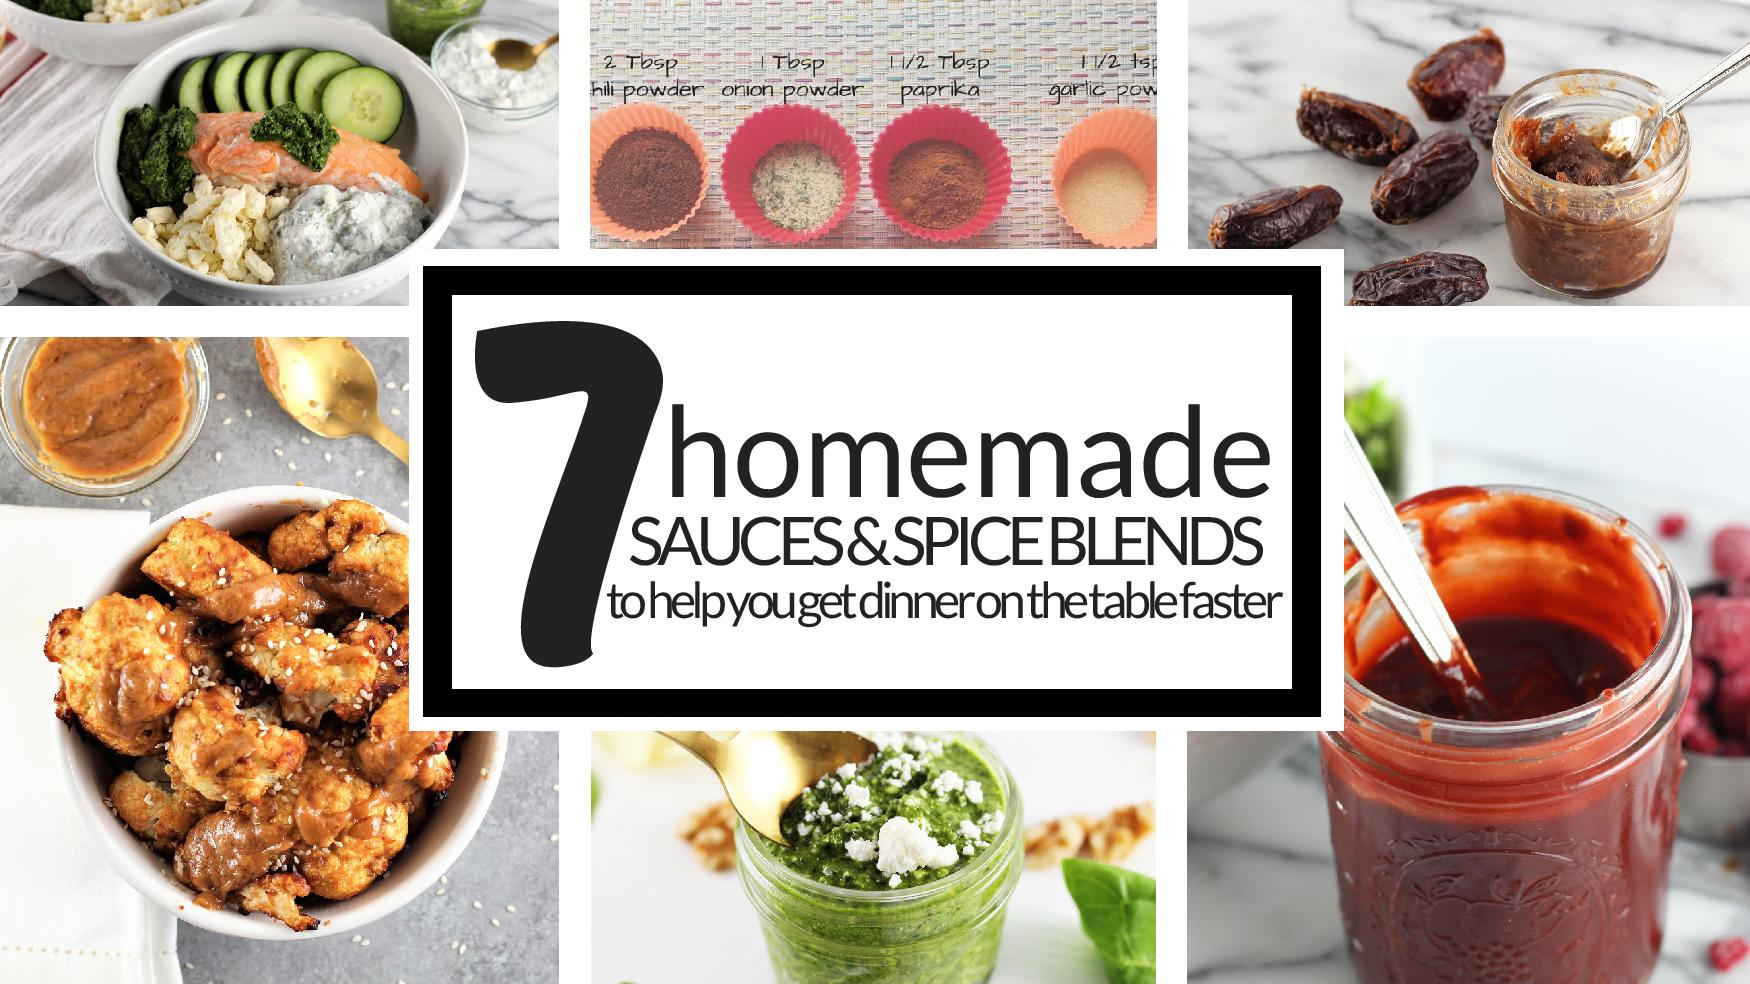 7 homemade sauces and spice blends to help you get dinner on the table faster-page-001.jpg